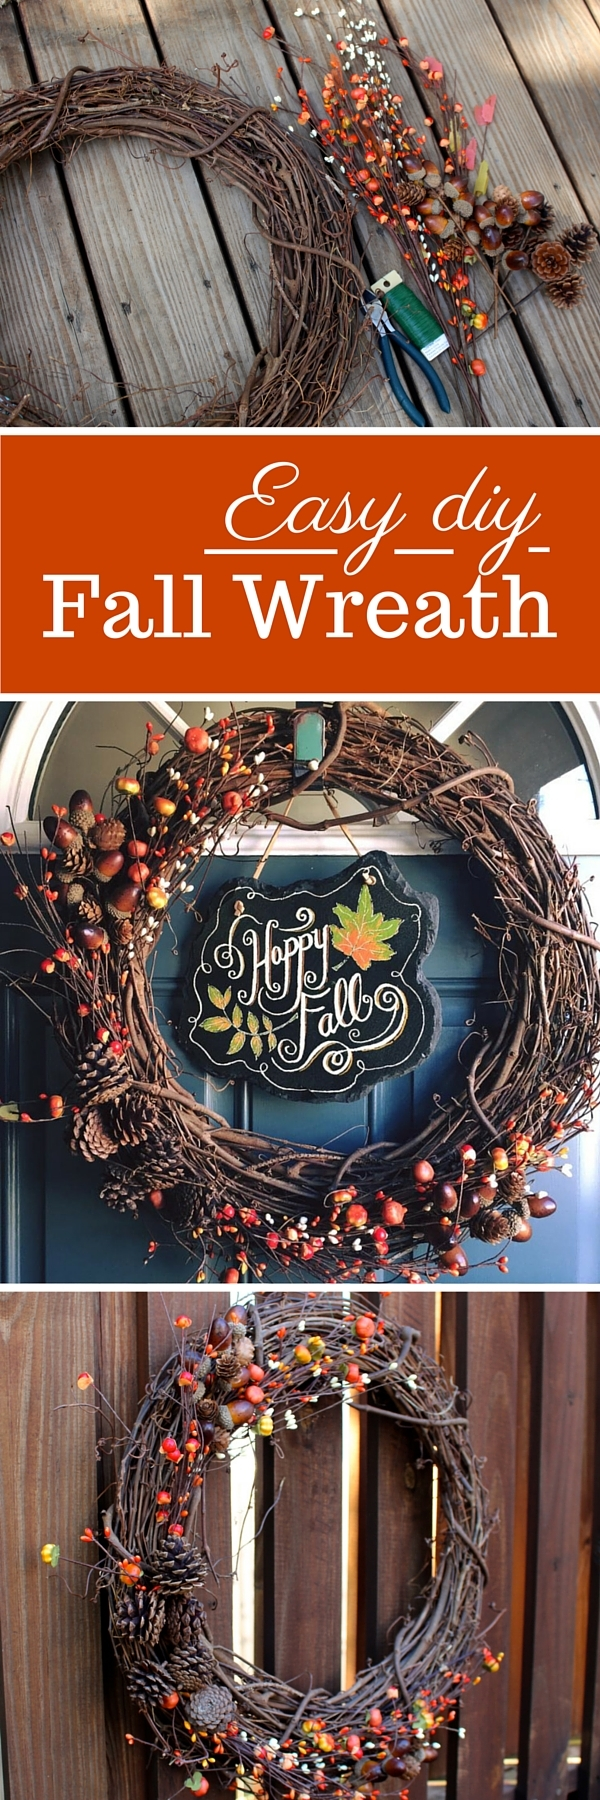 An Easy DIY Fall Wreath Tutorial